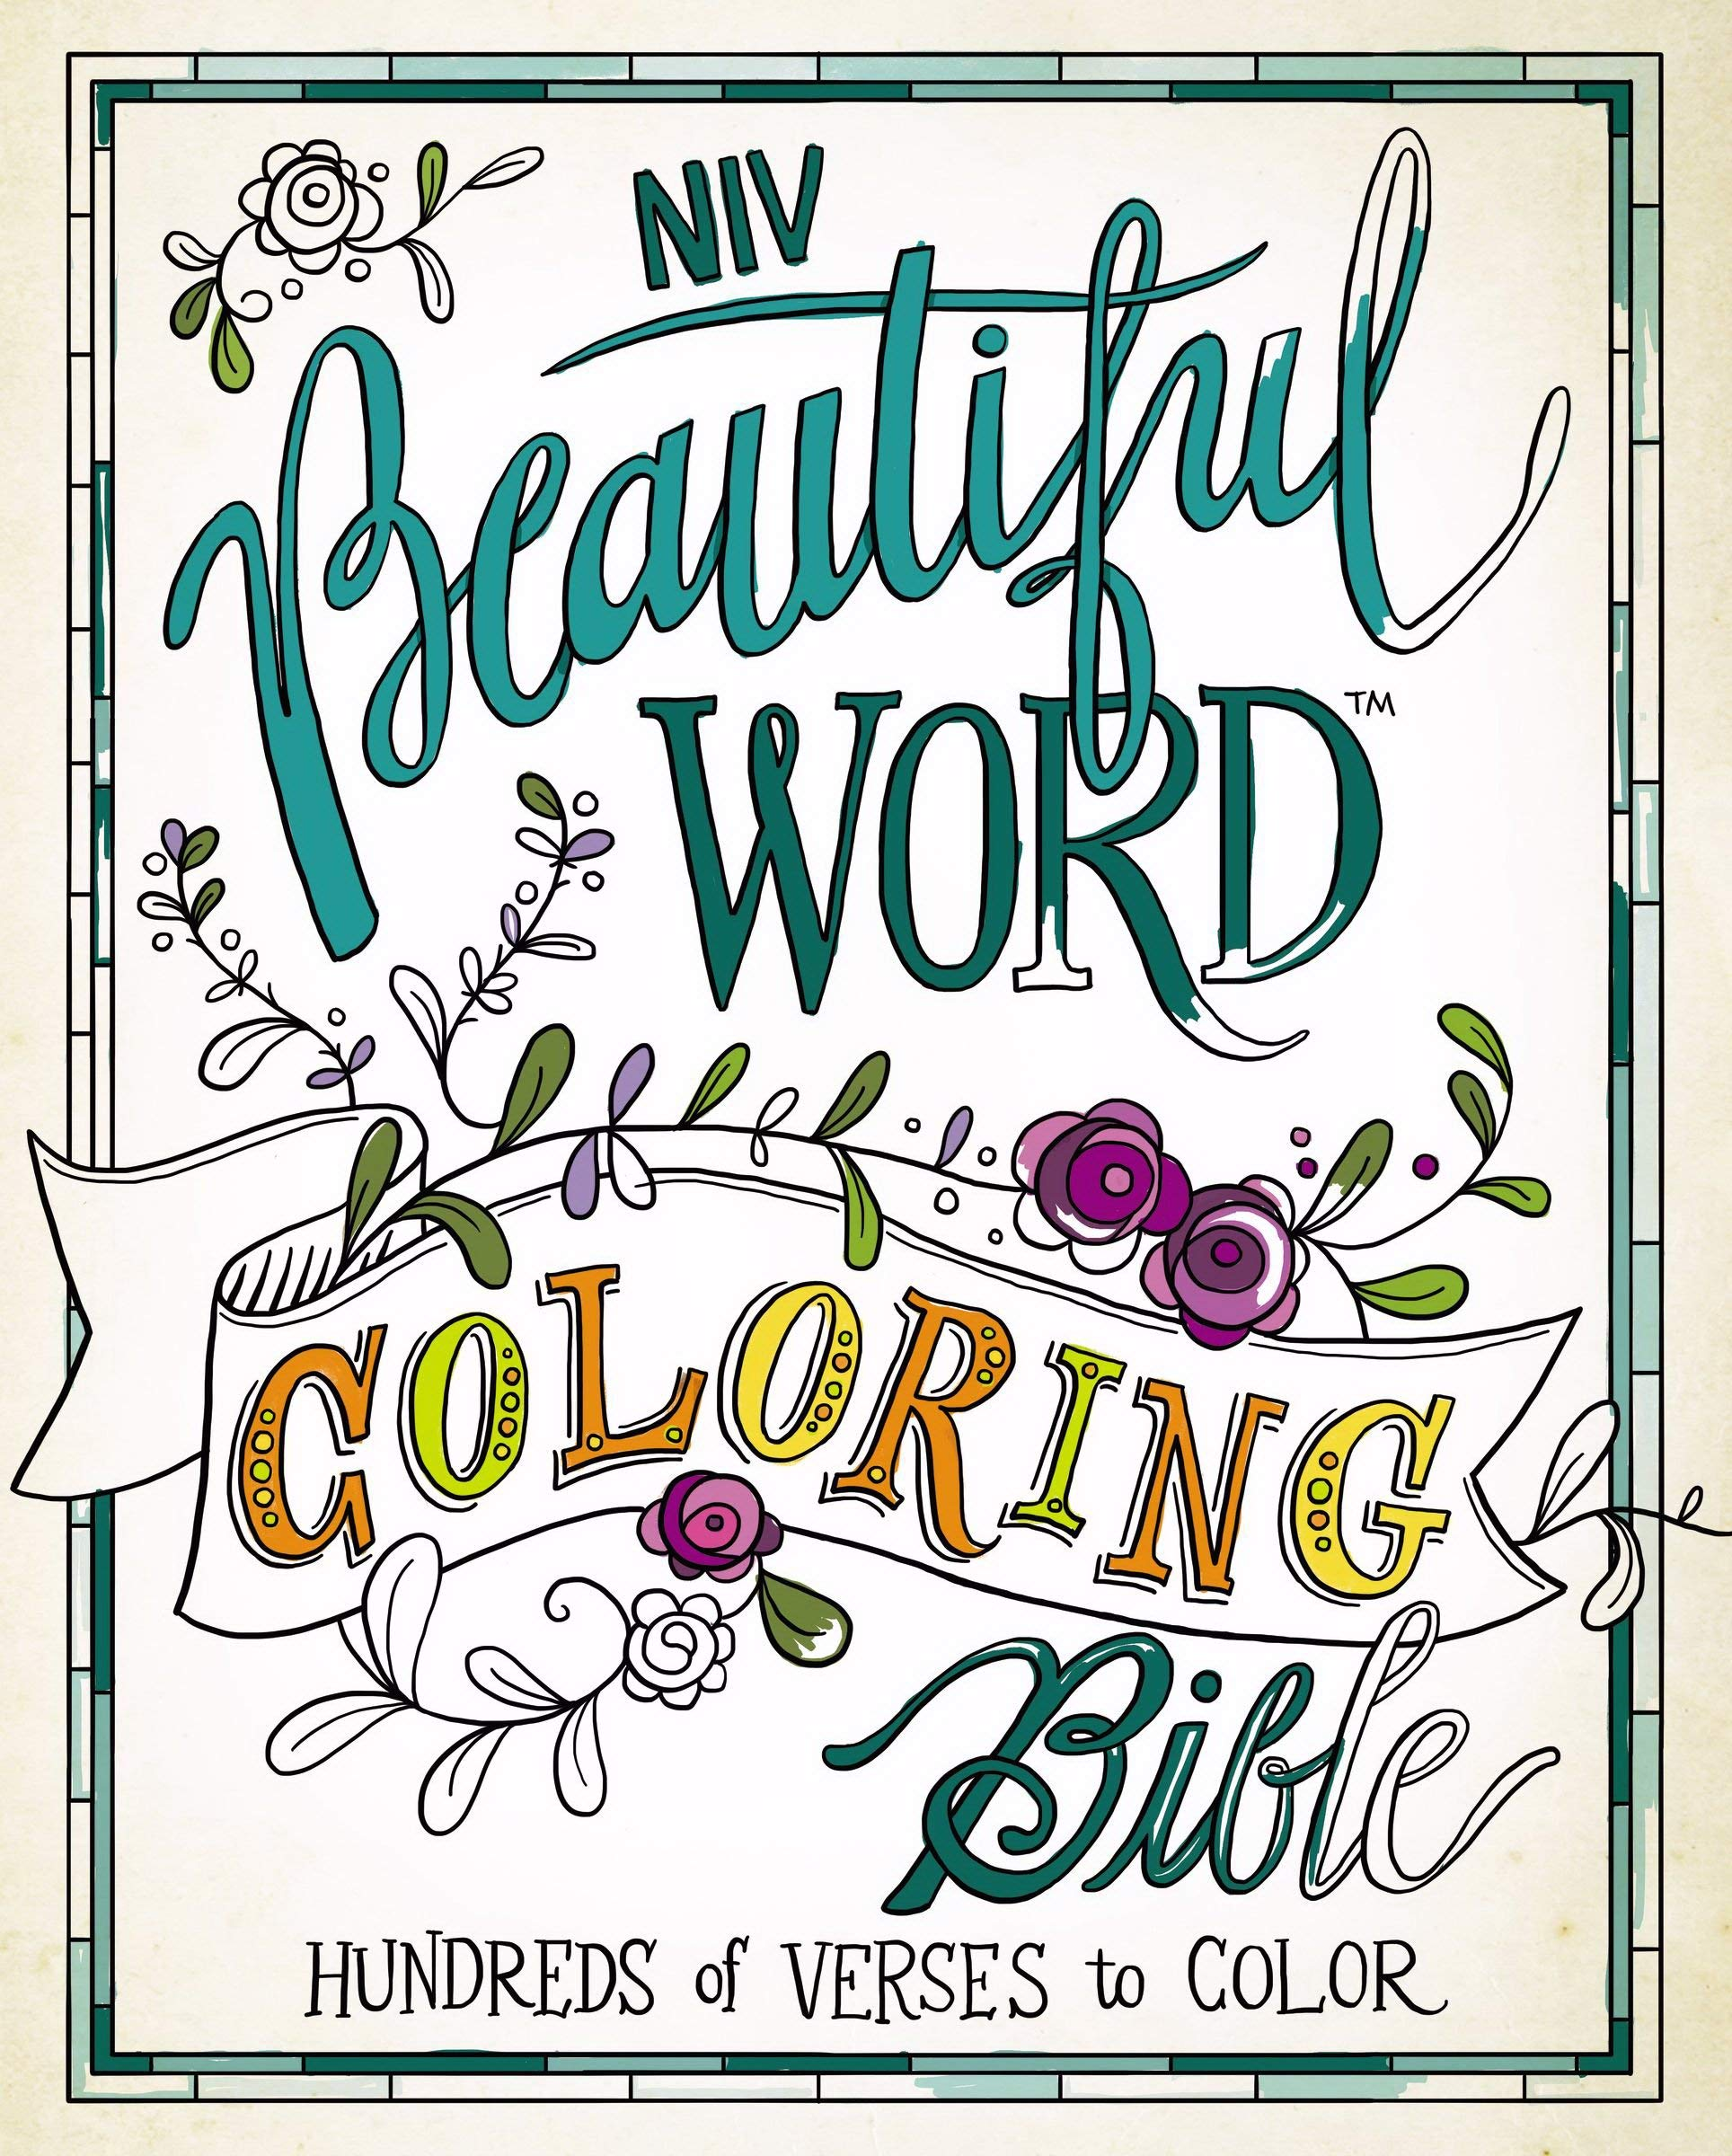 niv beautiful word coloring bible hardcover hundreds of verses to Be Still and Know Bible Verse follow the author